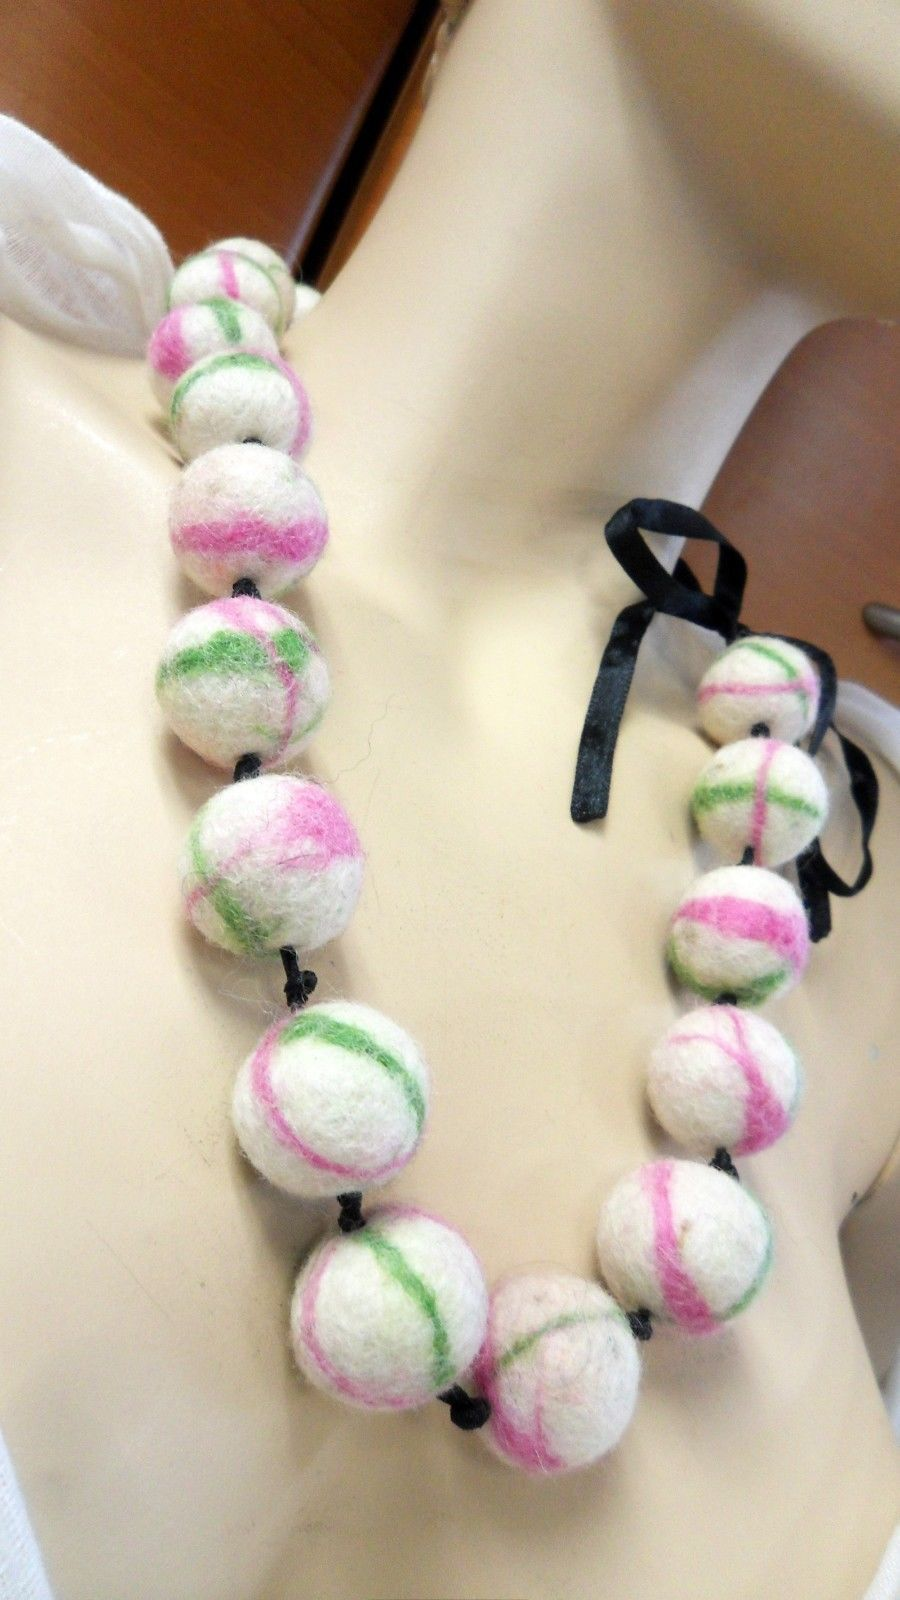 LONG NECKLACE FELTED HANDMADE IN EUROPE WHITE PINK UNIQUE HOLIDAY GIFT IDEA